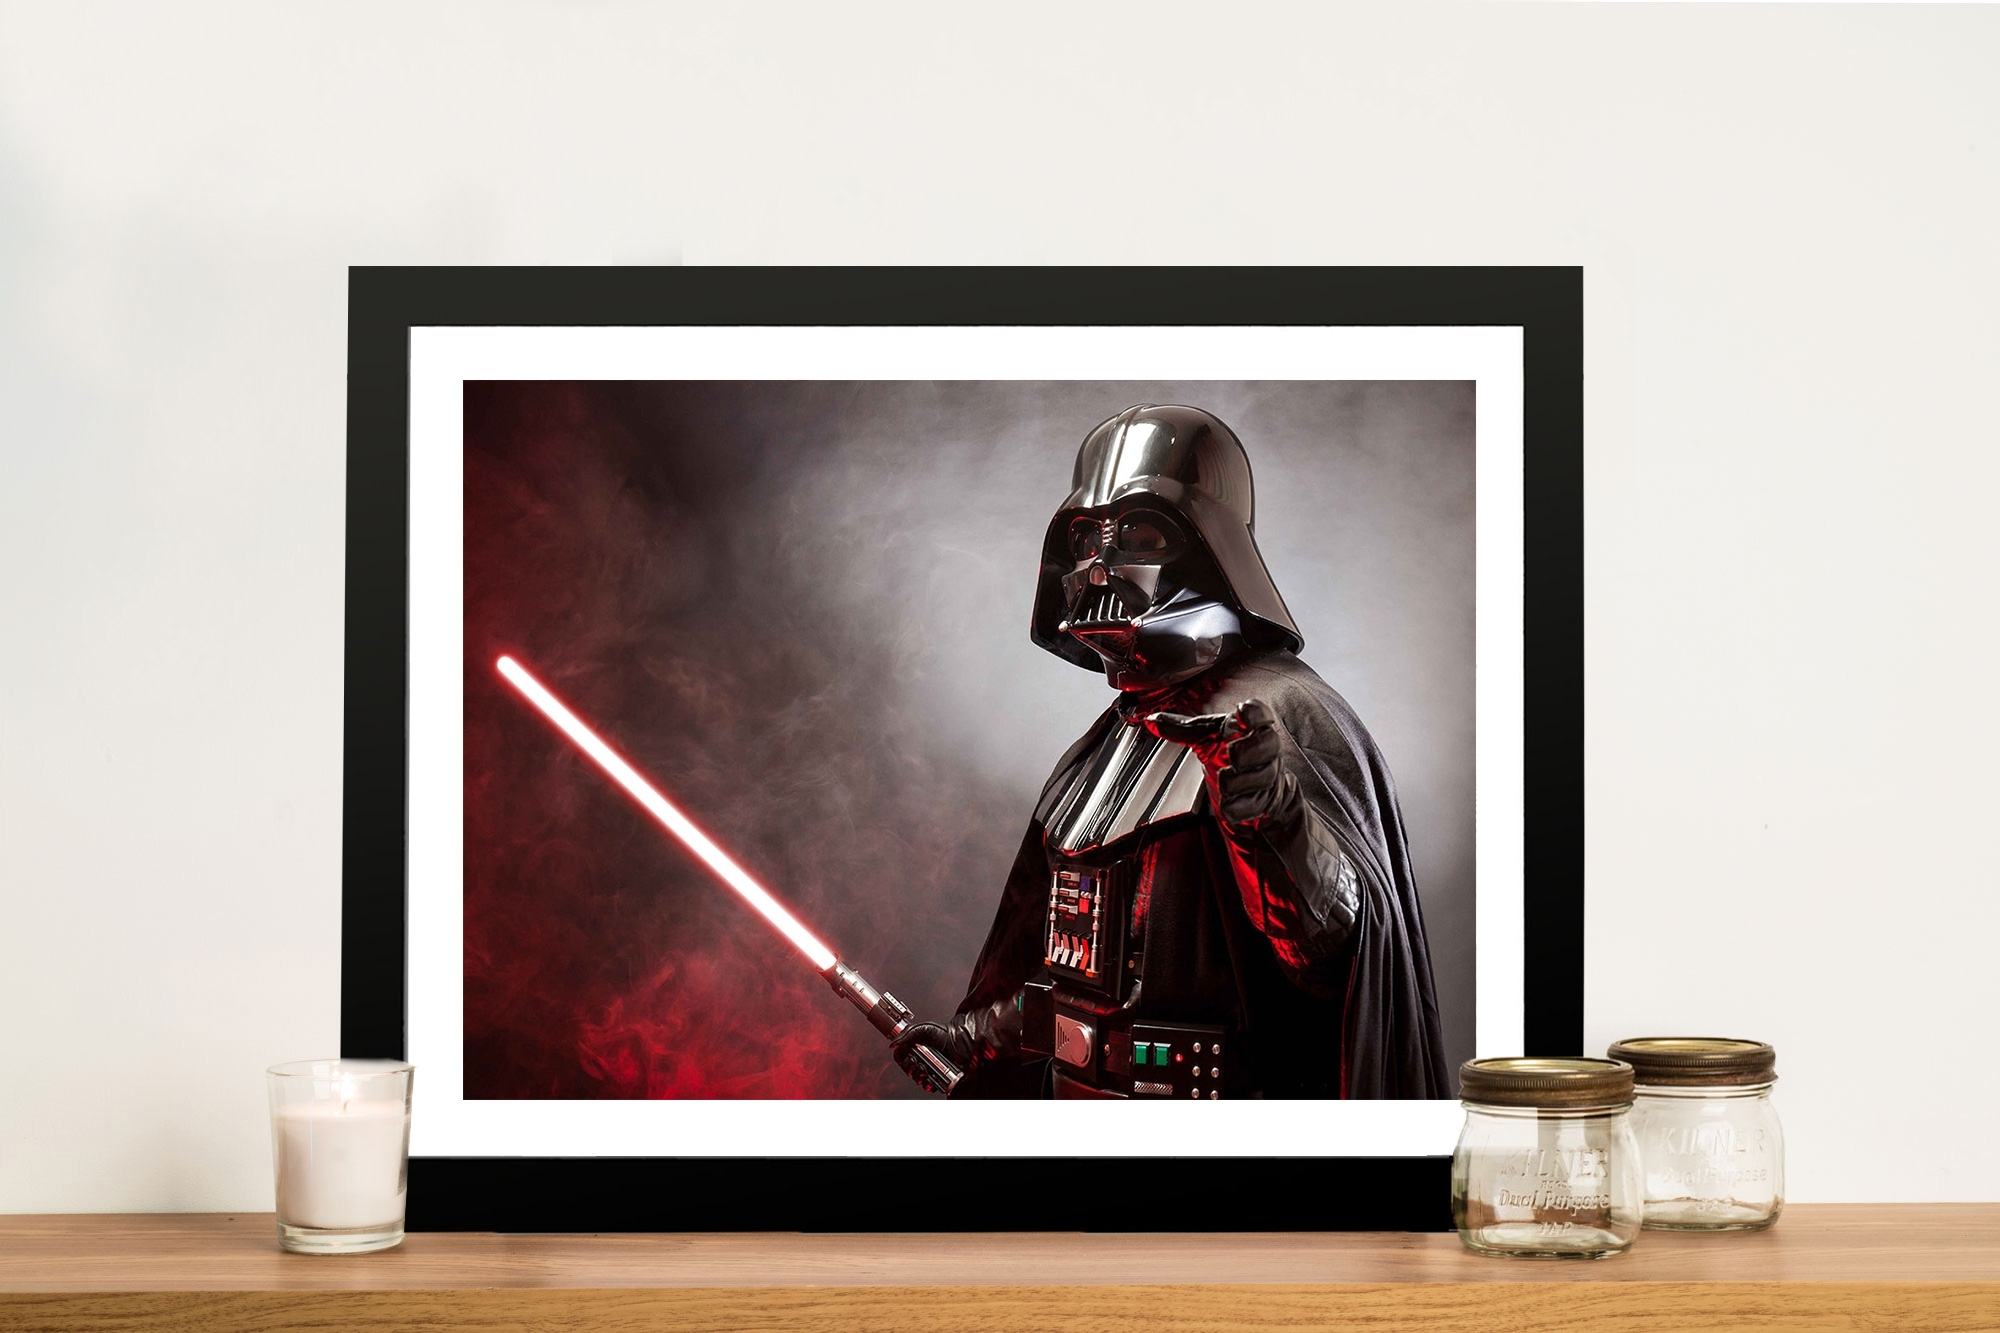 Darth Star Wars Canvas Print | Wall Art Print Australia With Regard To 2018 Darth Vader Wall Art (View 4 of 20)